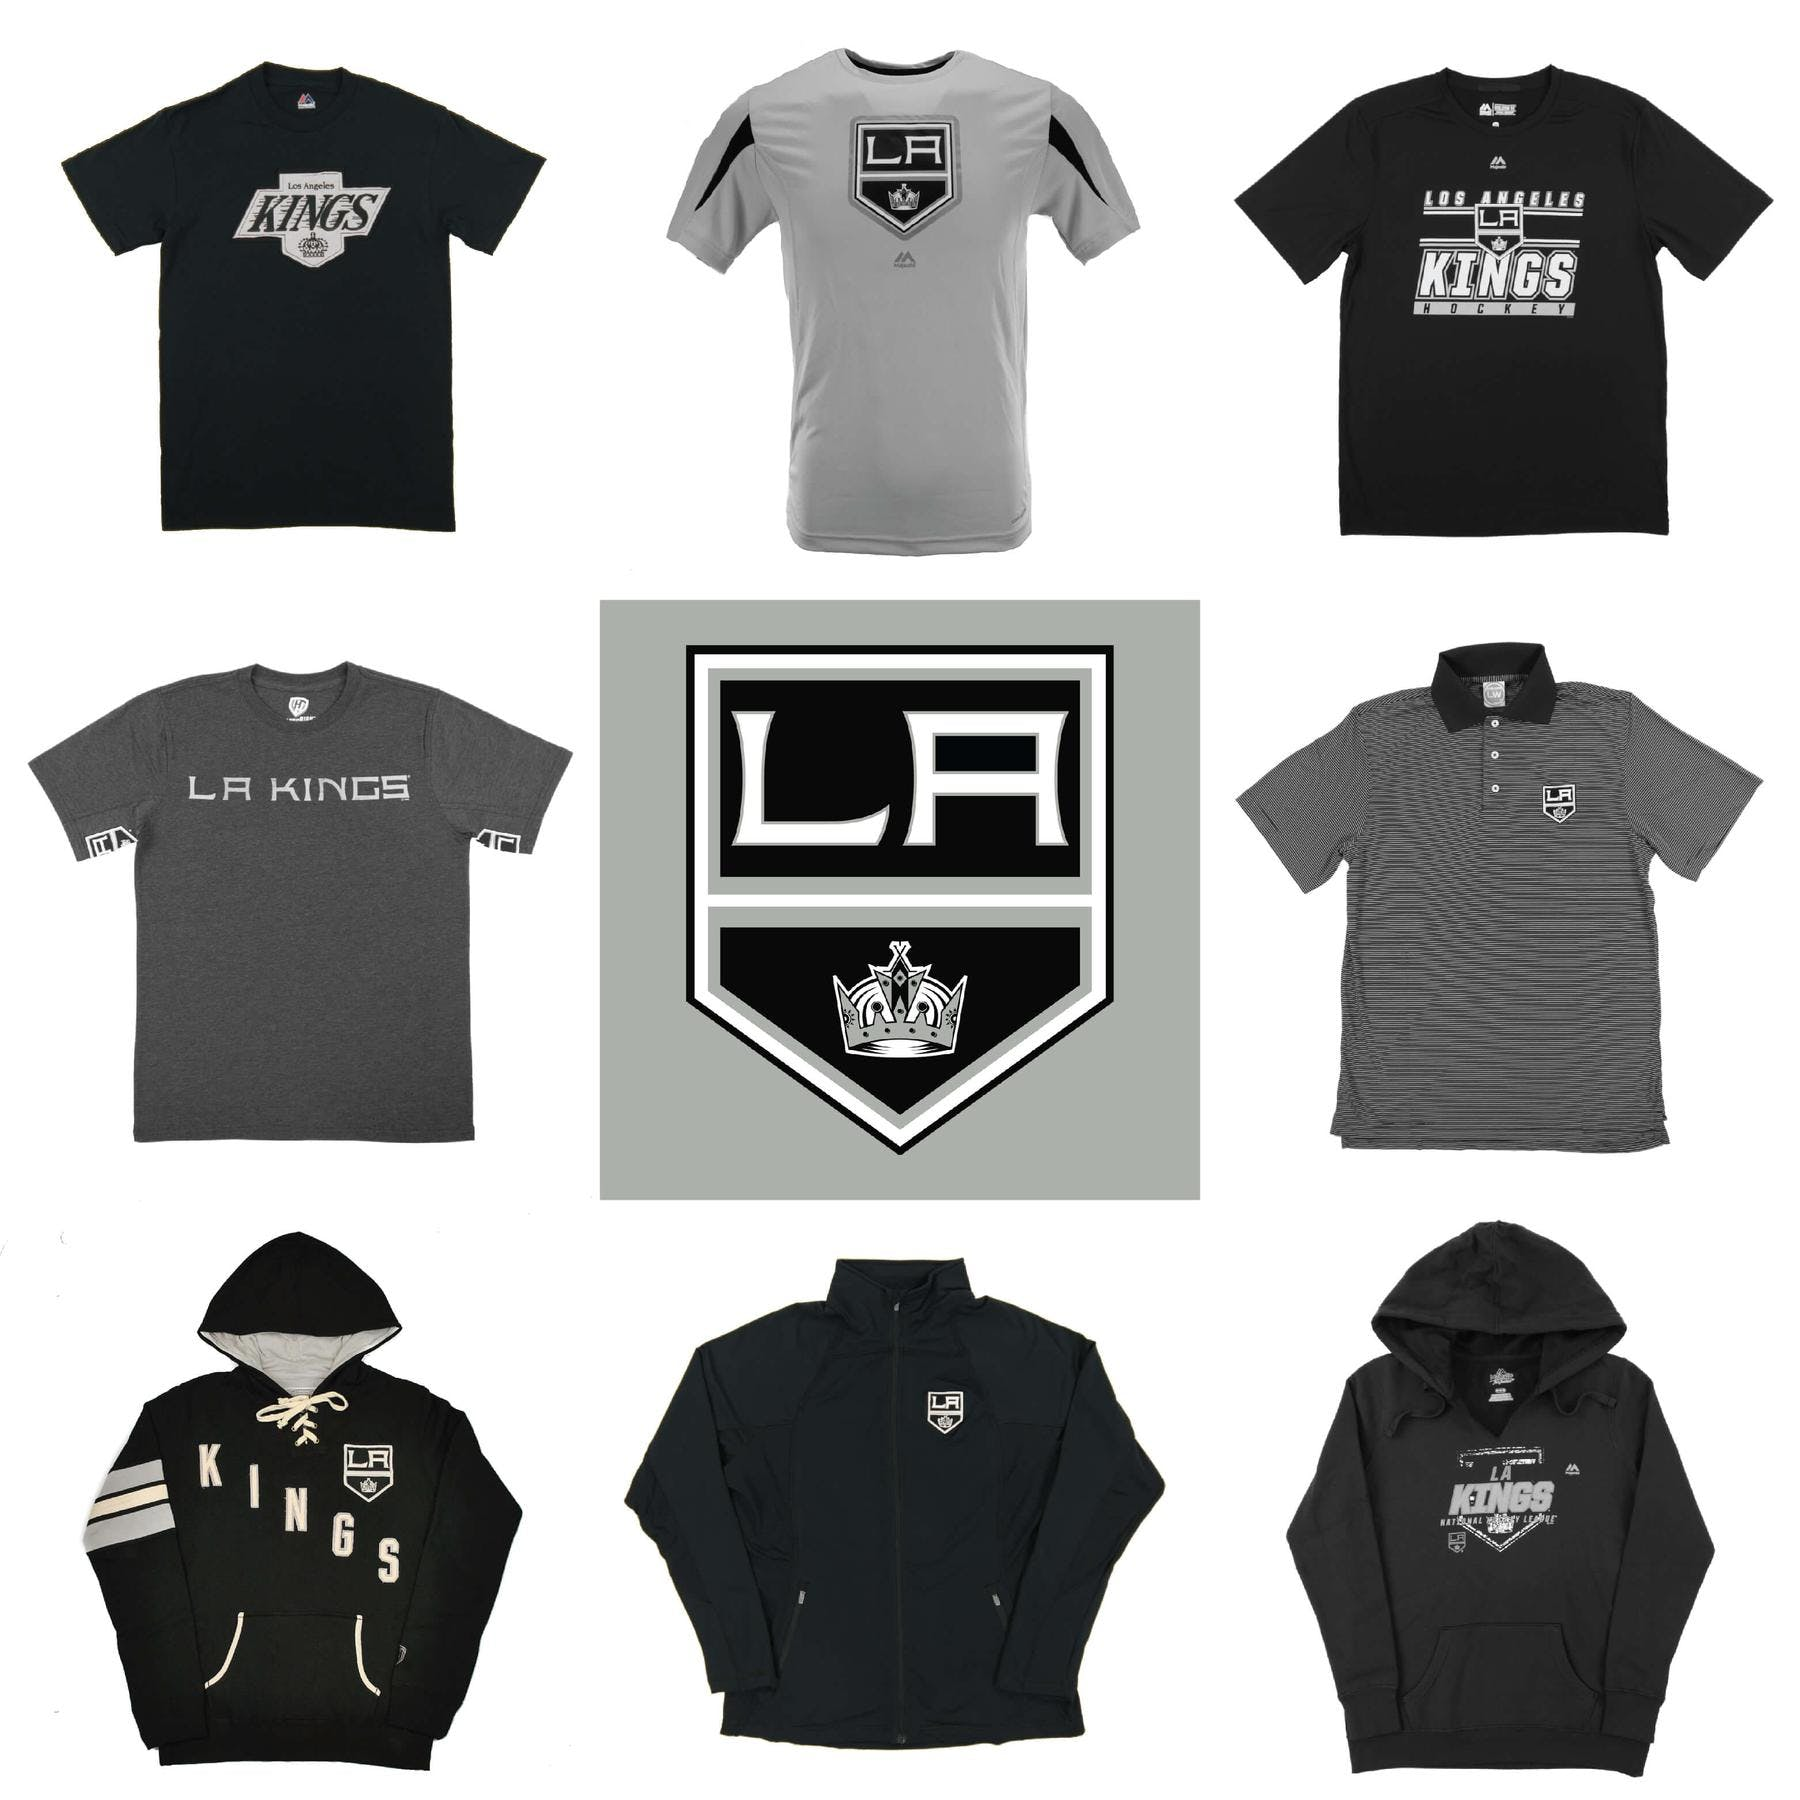 541b51a9dae Los Angeles Kings Officially Licensed NHL Apparel Liquidation - 1,500+  Items, $66,600+ SRP! | DA Card World